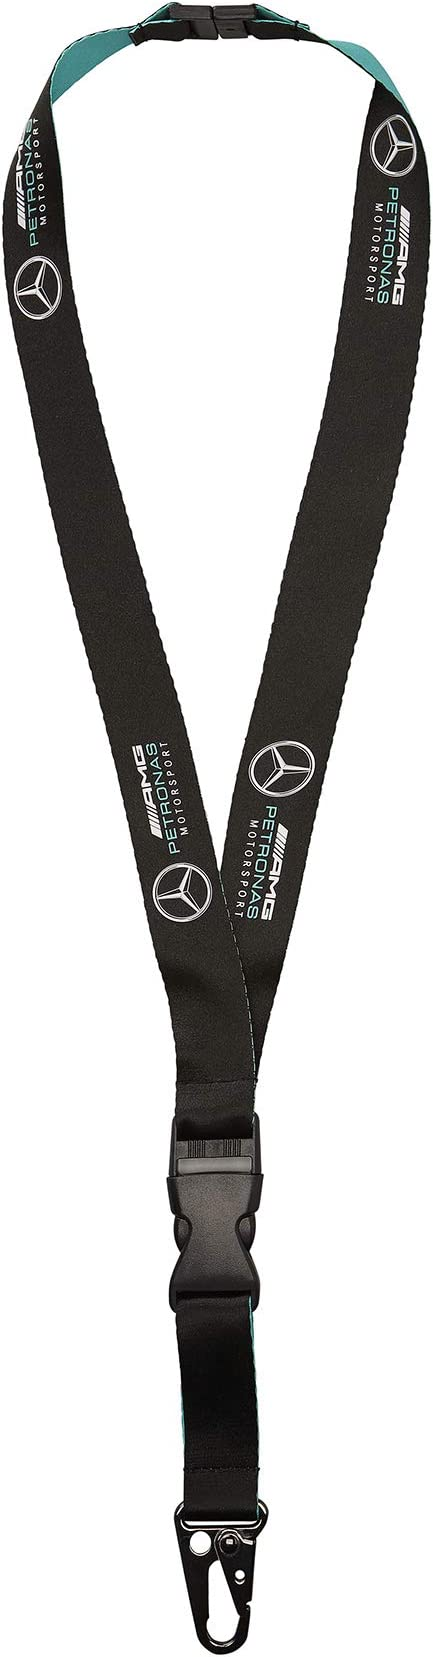 MAMGP 2019 Mercedes-AMG F1 Official Formula 1 Team Lani/ère Tour de Cou pour Ticket